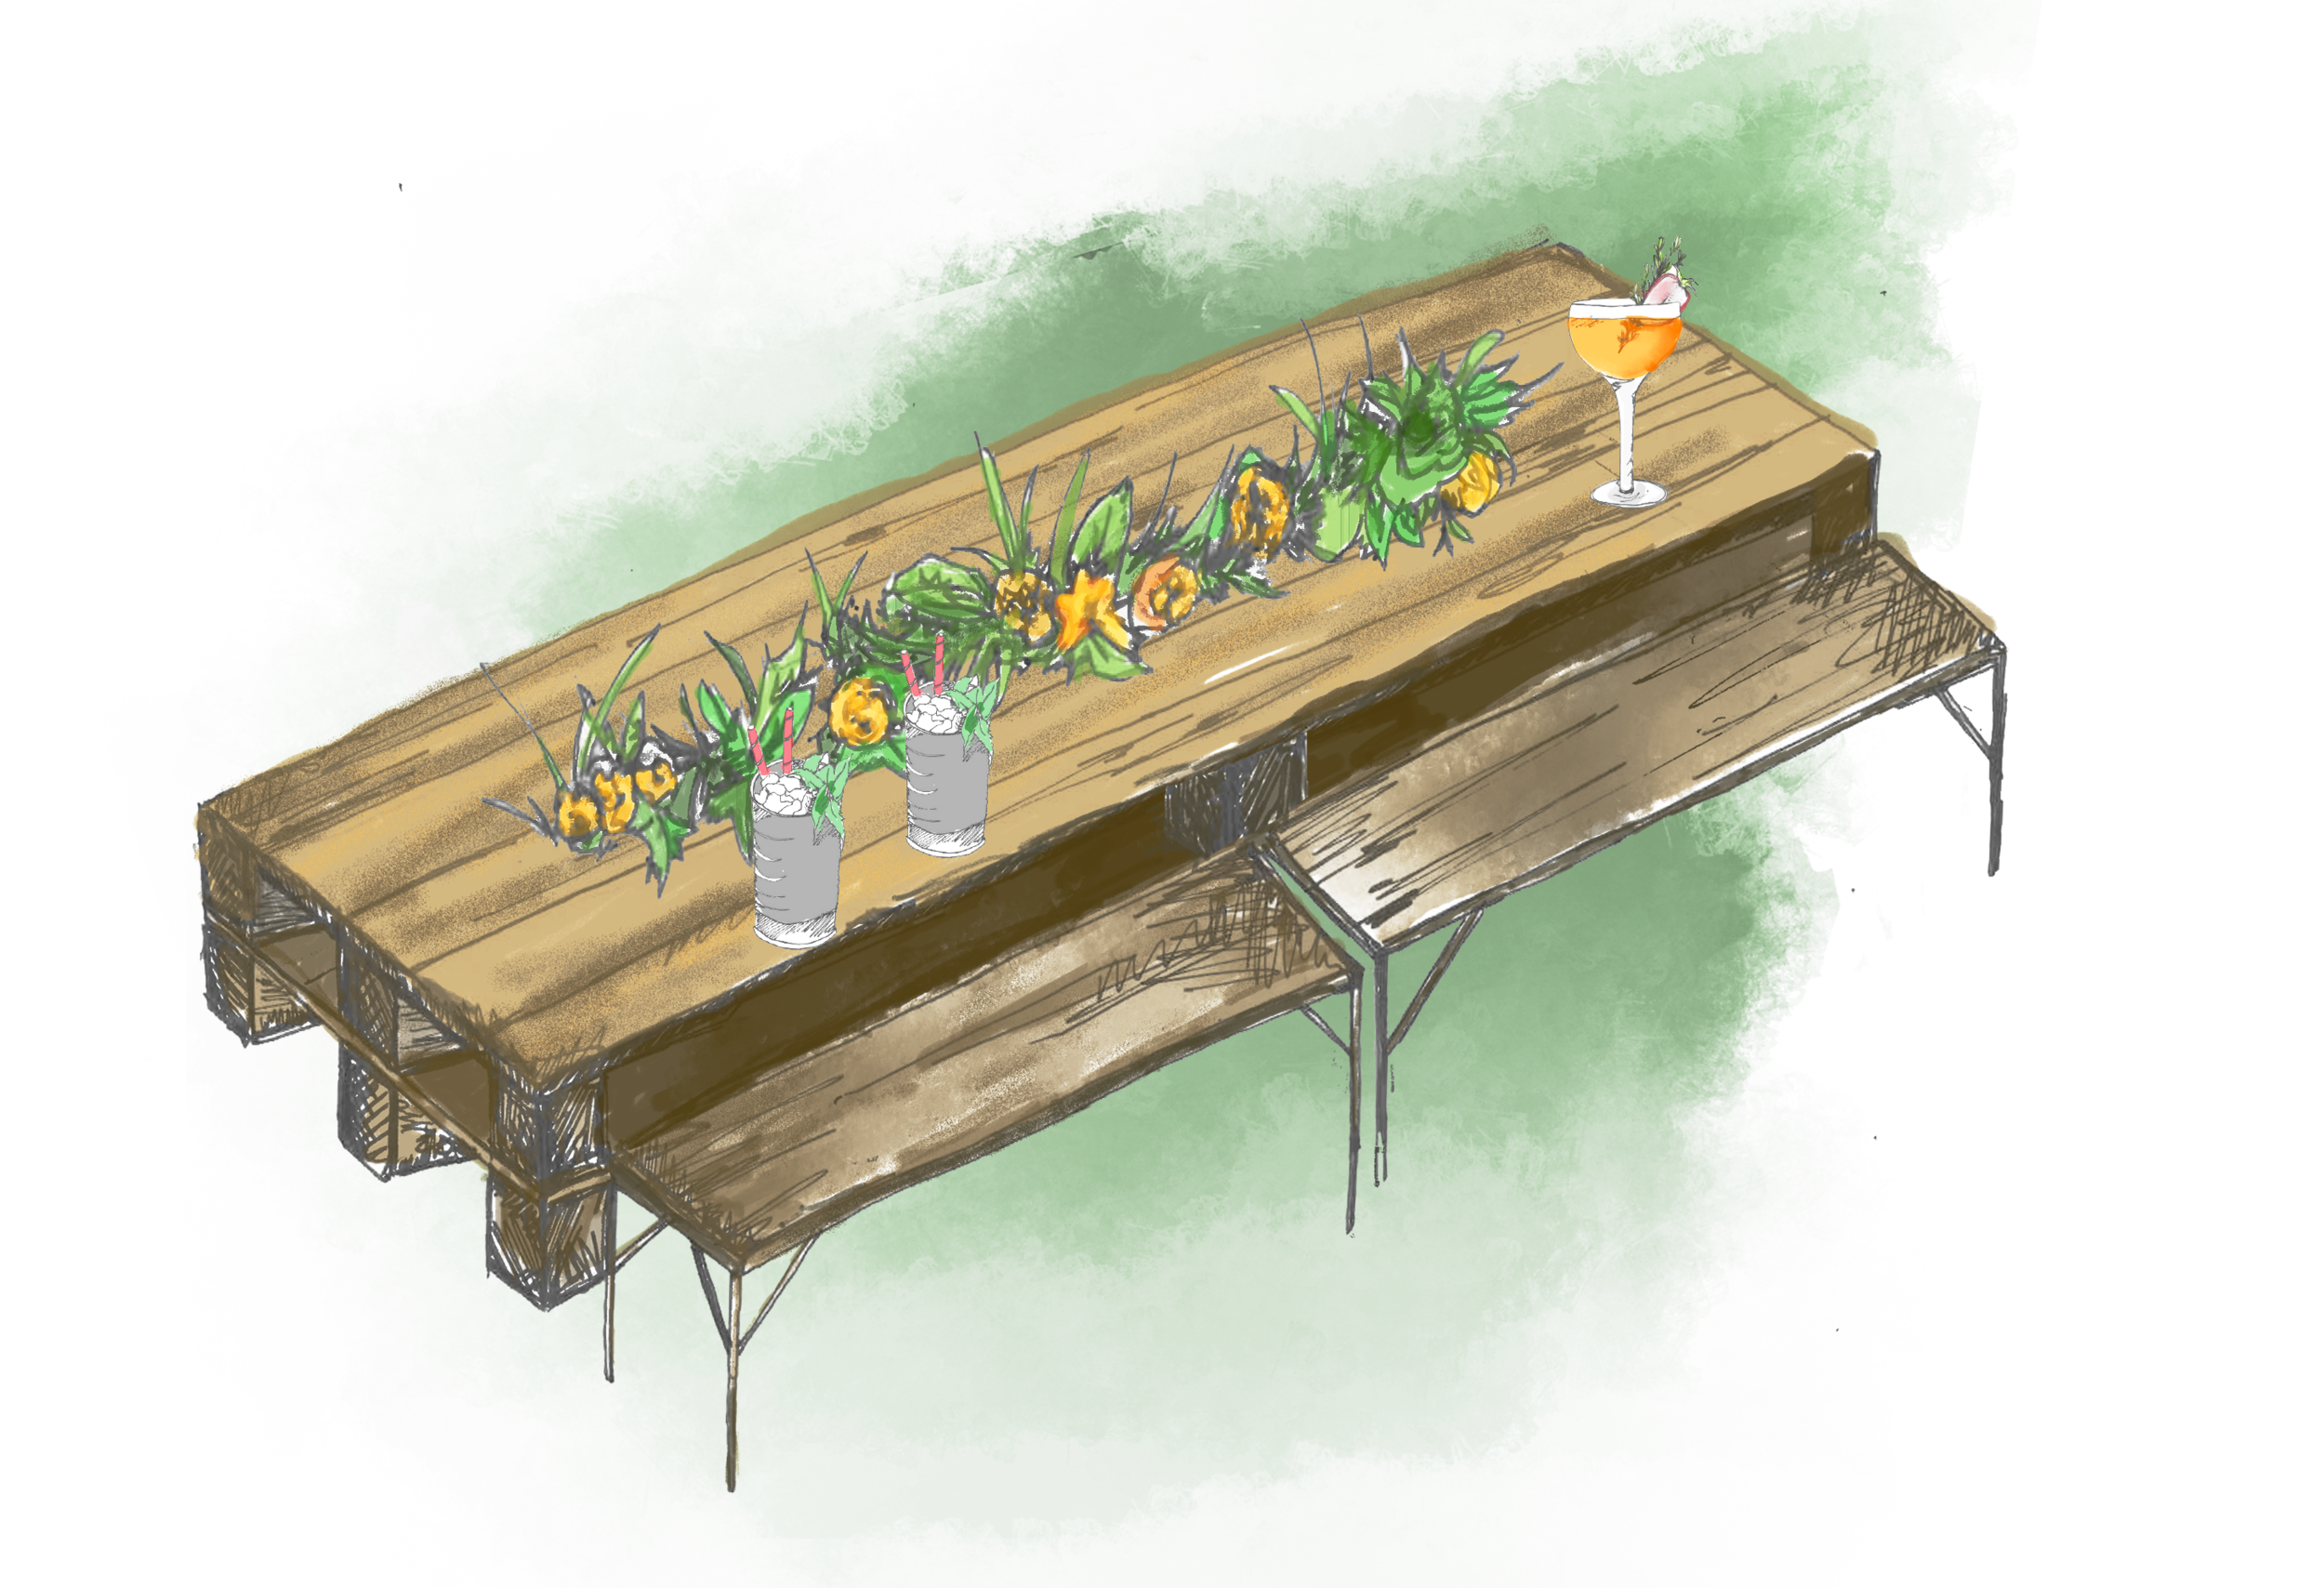 Long flower table - The Long Flower Table is embedded with greenery and foliage and can seat up to 30 people, perfect for small and medium size drinks parties.